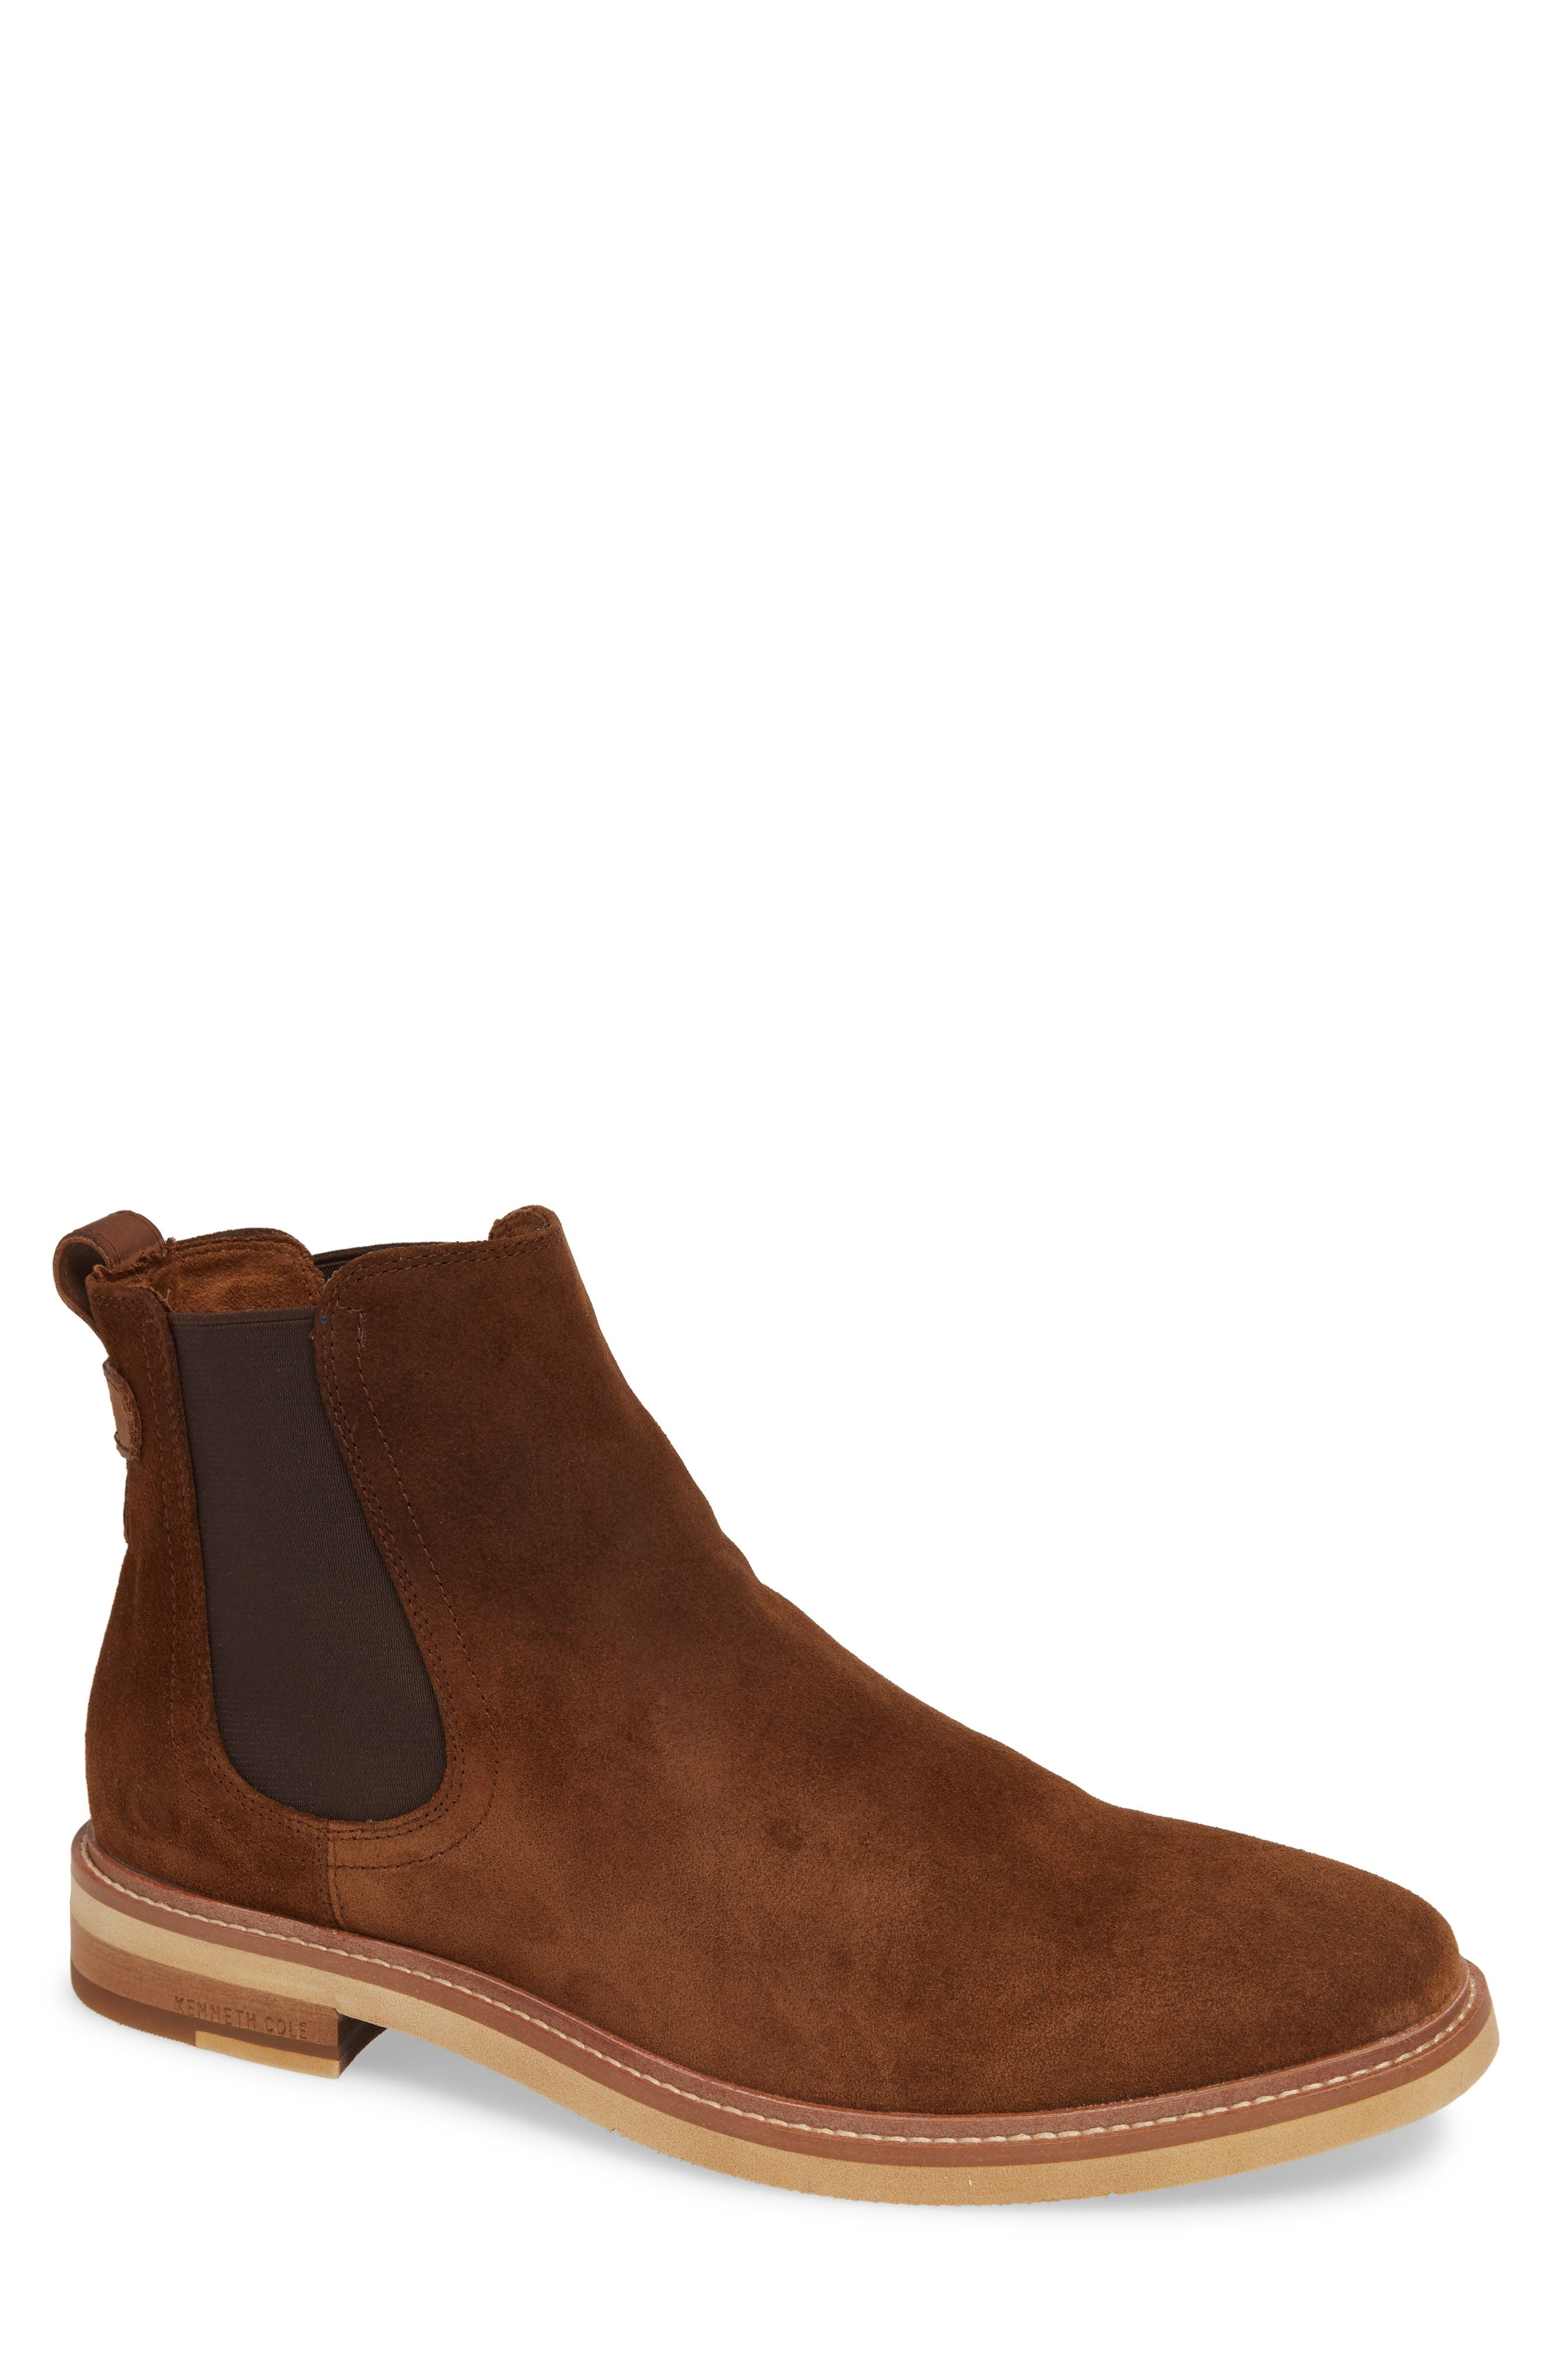 Whistler Mid Chelsea Boot,                             Main thumbnail 1, color,                             TOBACCO SUEDE